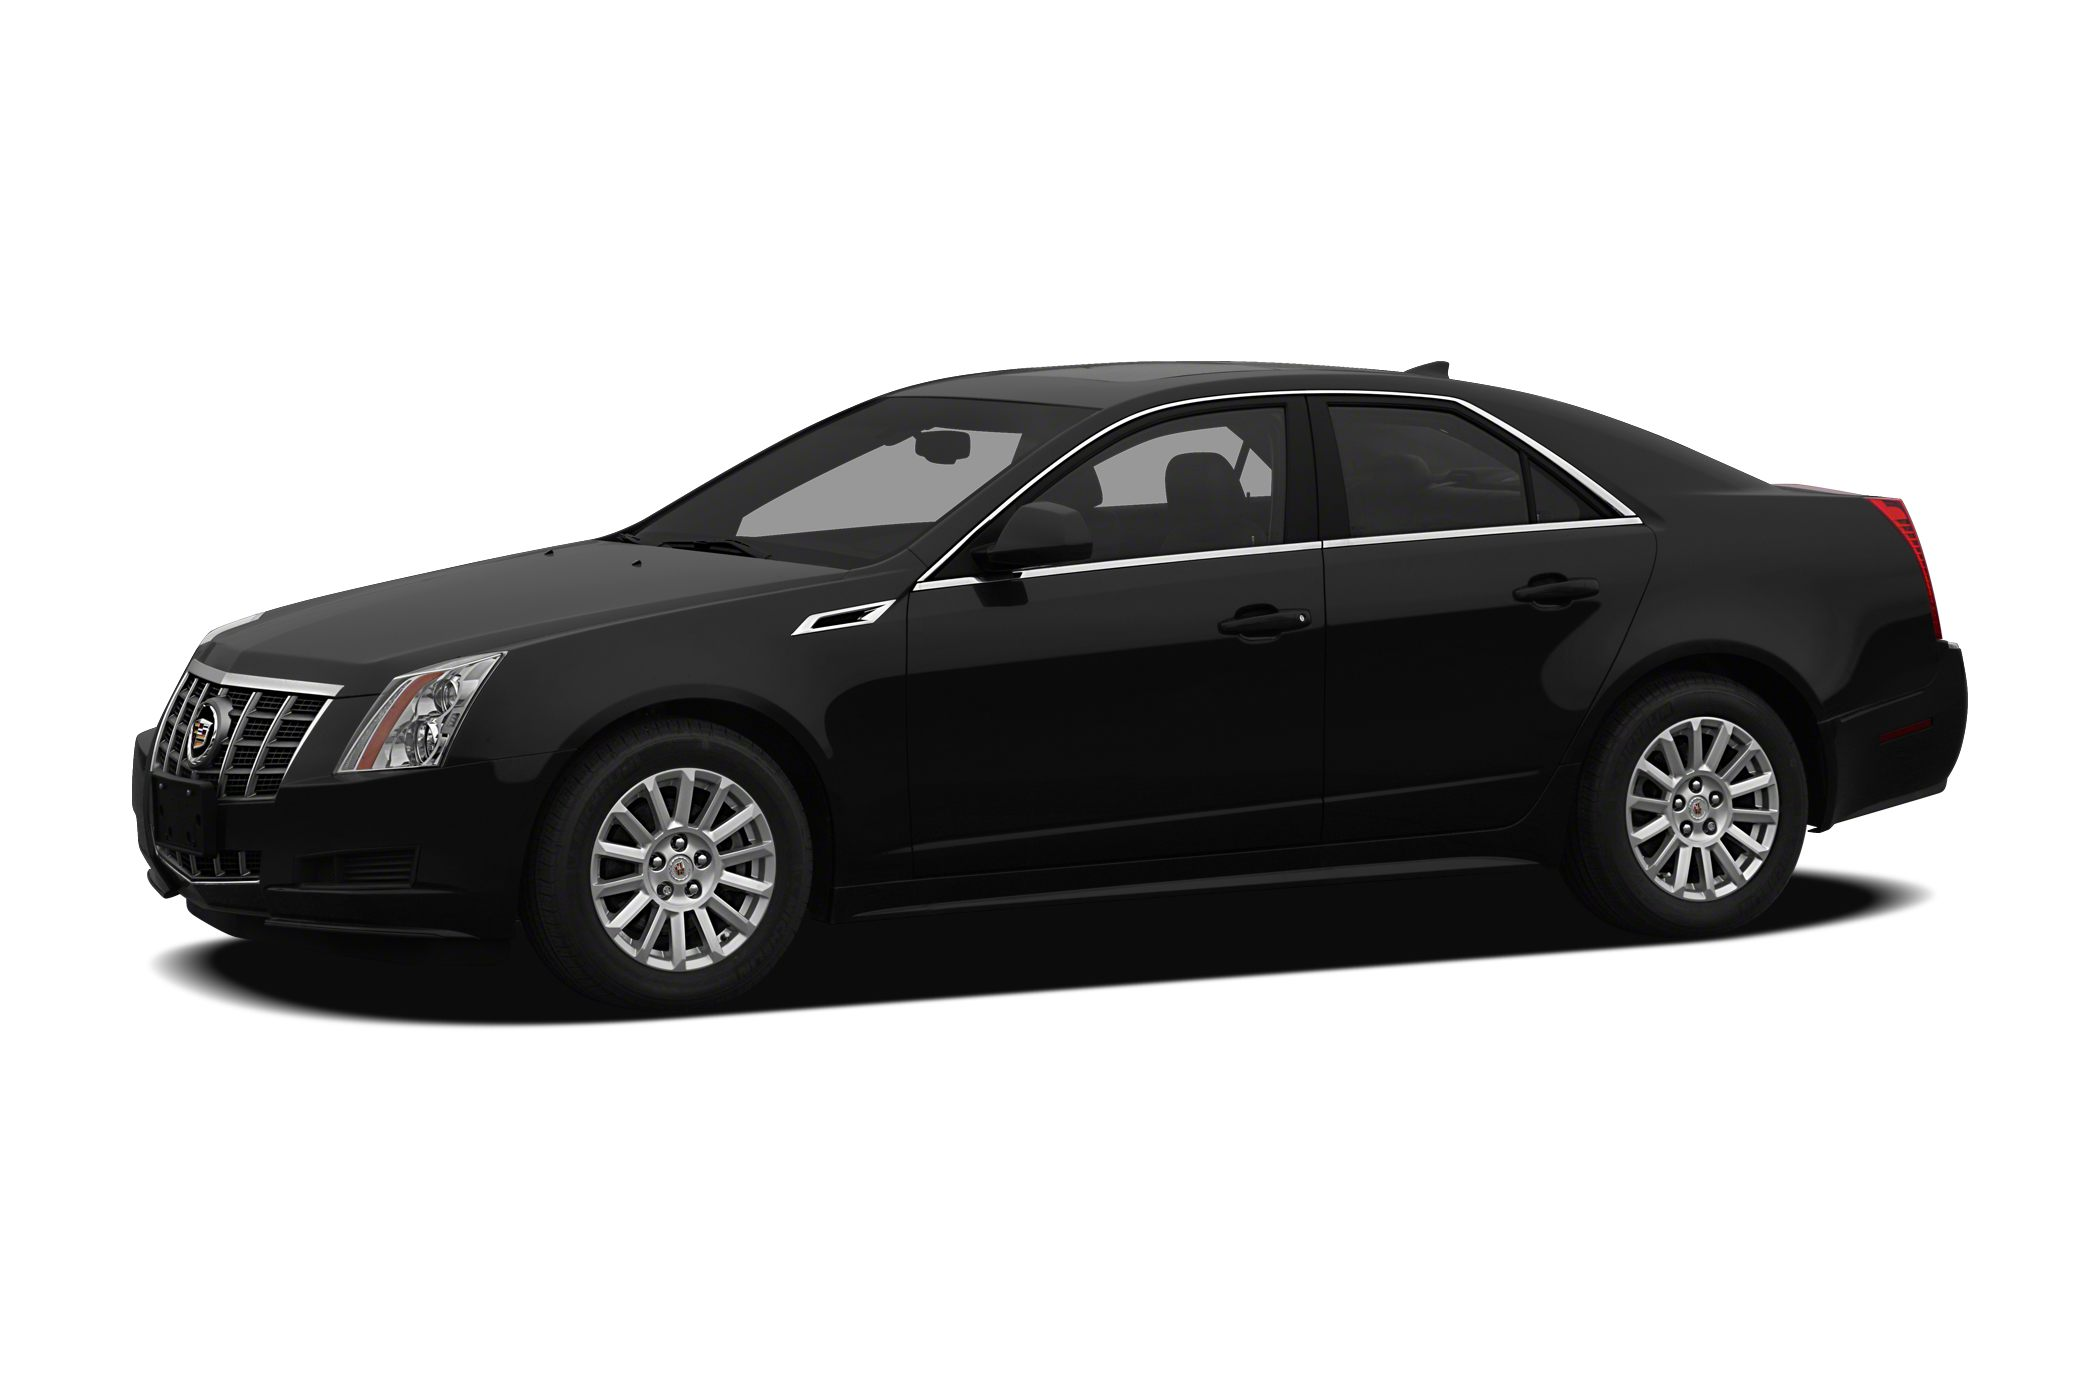 2013 Cadillac CTS Luxury Sedan for sale in Aurora for $25,800 with 28,855 miles